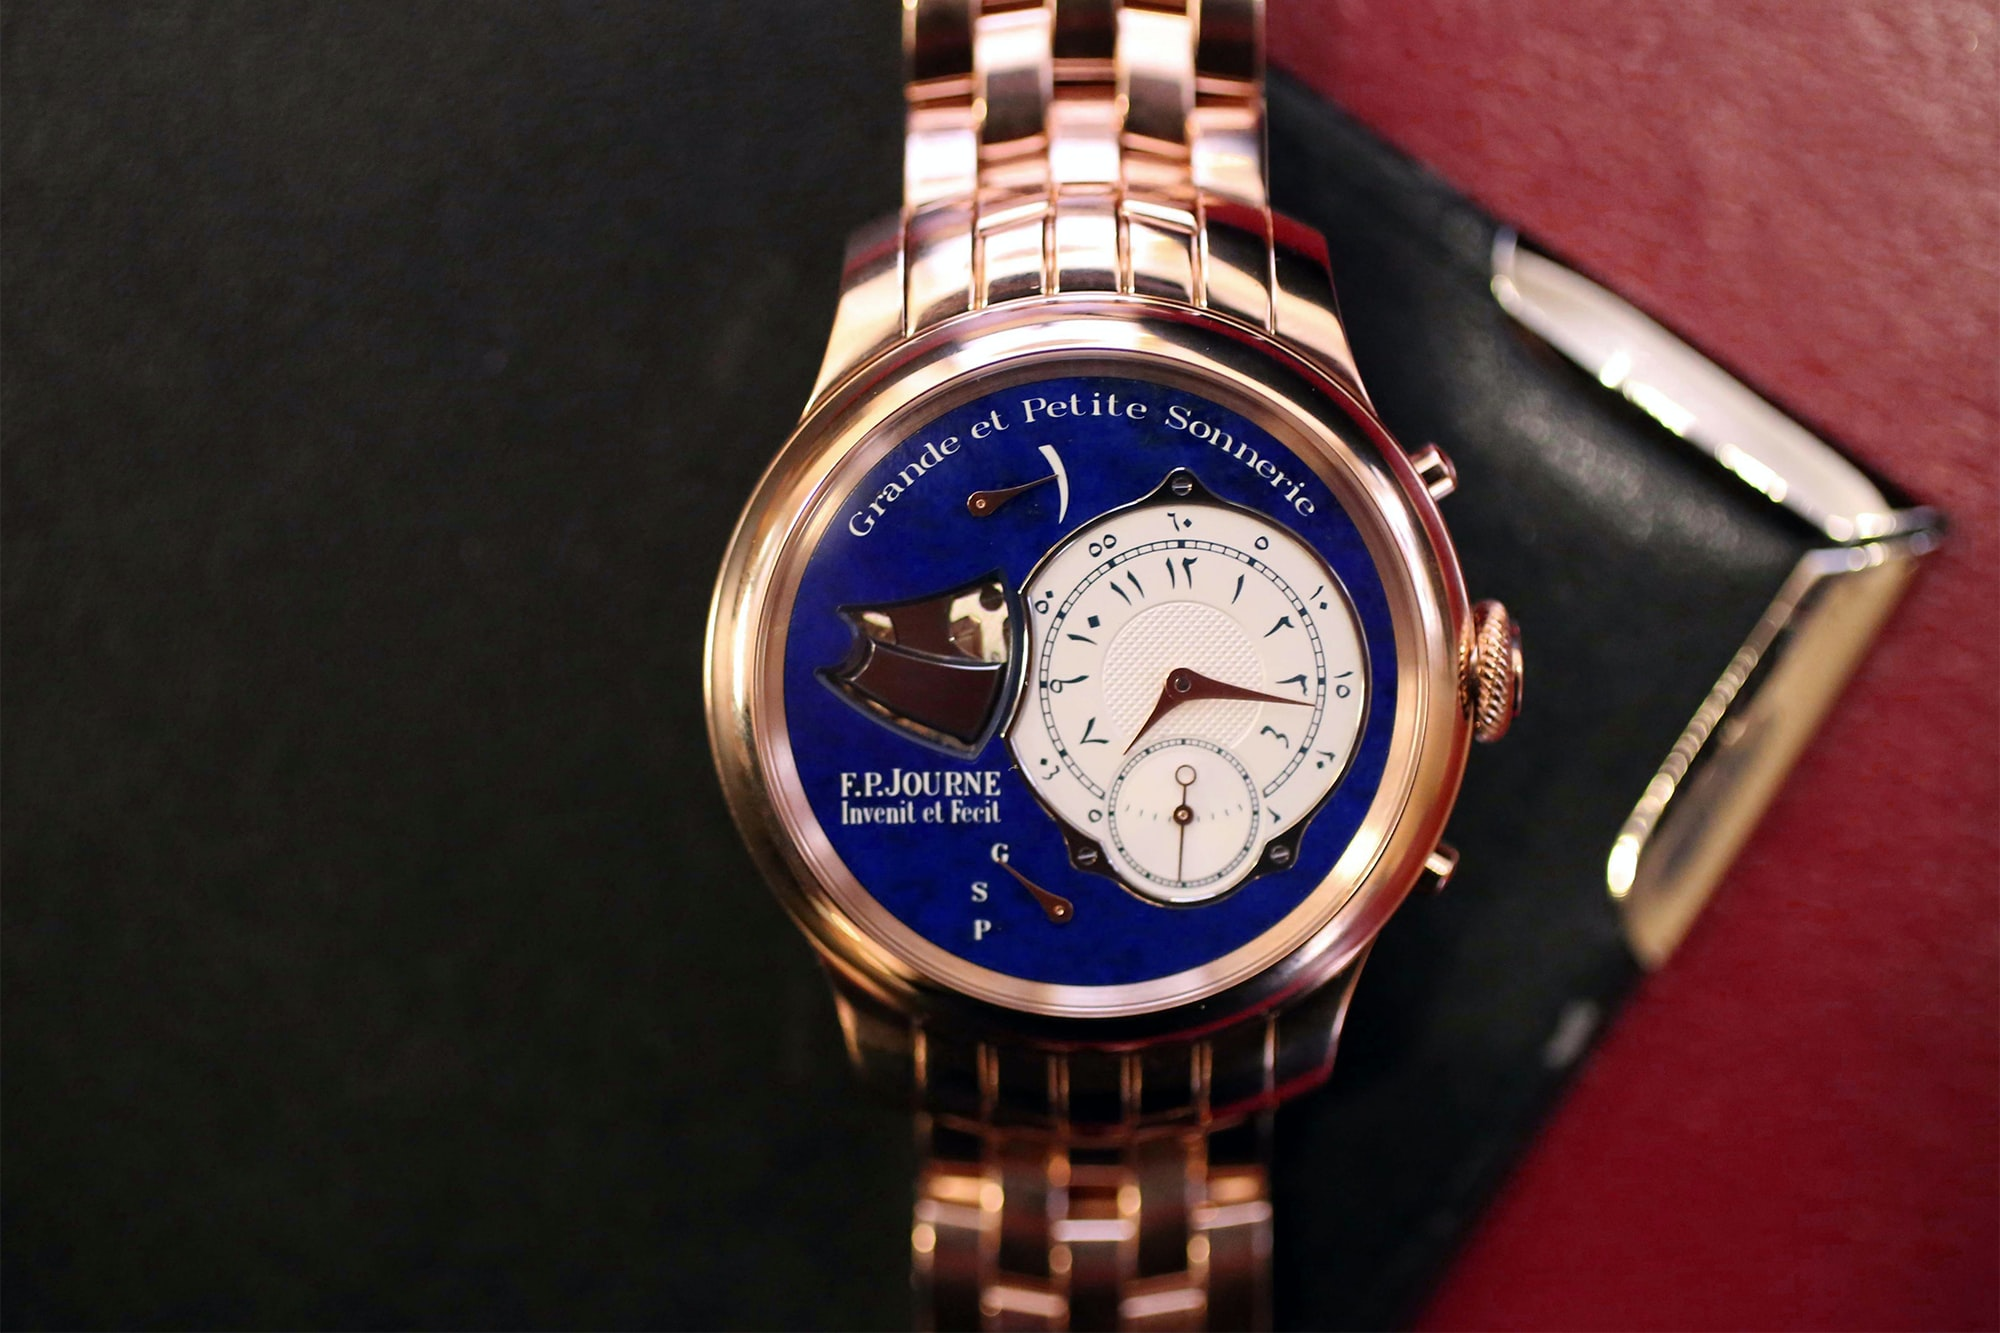 A Unique Pink Gold F.P. Journe Sonnerie Souveraine lapis dial Just Because: A Unique Pink Gold F.P. Journe Sonnerie Souveraine, With Lapis Lazuli Dial And Eastern Arabic Numerals Just Because: A Unique Pink Gold F.P. Journe Sonnerie Souveraine, With Lapis Lazuli Dial And Eastern Arabic Numerals IMG 4277